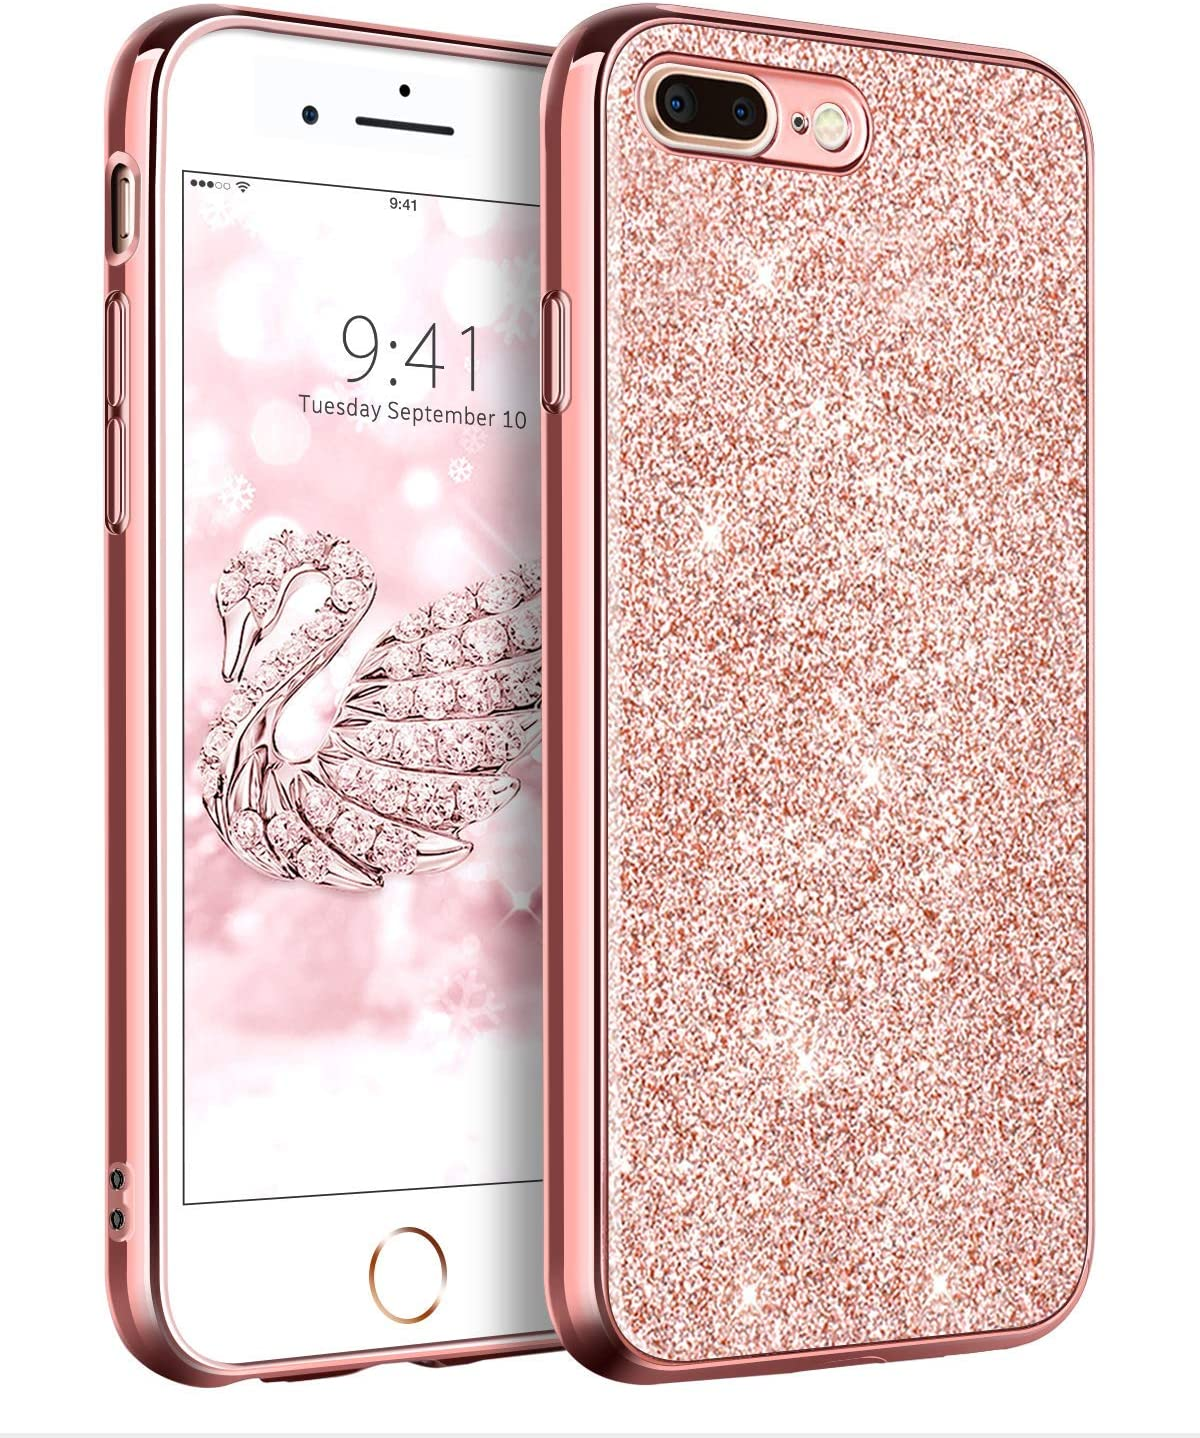 DUEDUE iPhone 7 Plus Case, iPhone 8 Plus Case, Sparkly Glitter Slim Hybrid Hard PC Shockproof Non-Slip,Full Body Protective Phone Cover for iPhone 7 Plus/iPhone 8 Plus for Women/Girls,Rose Gold